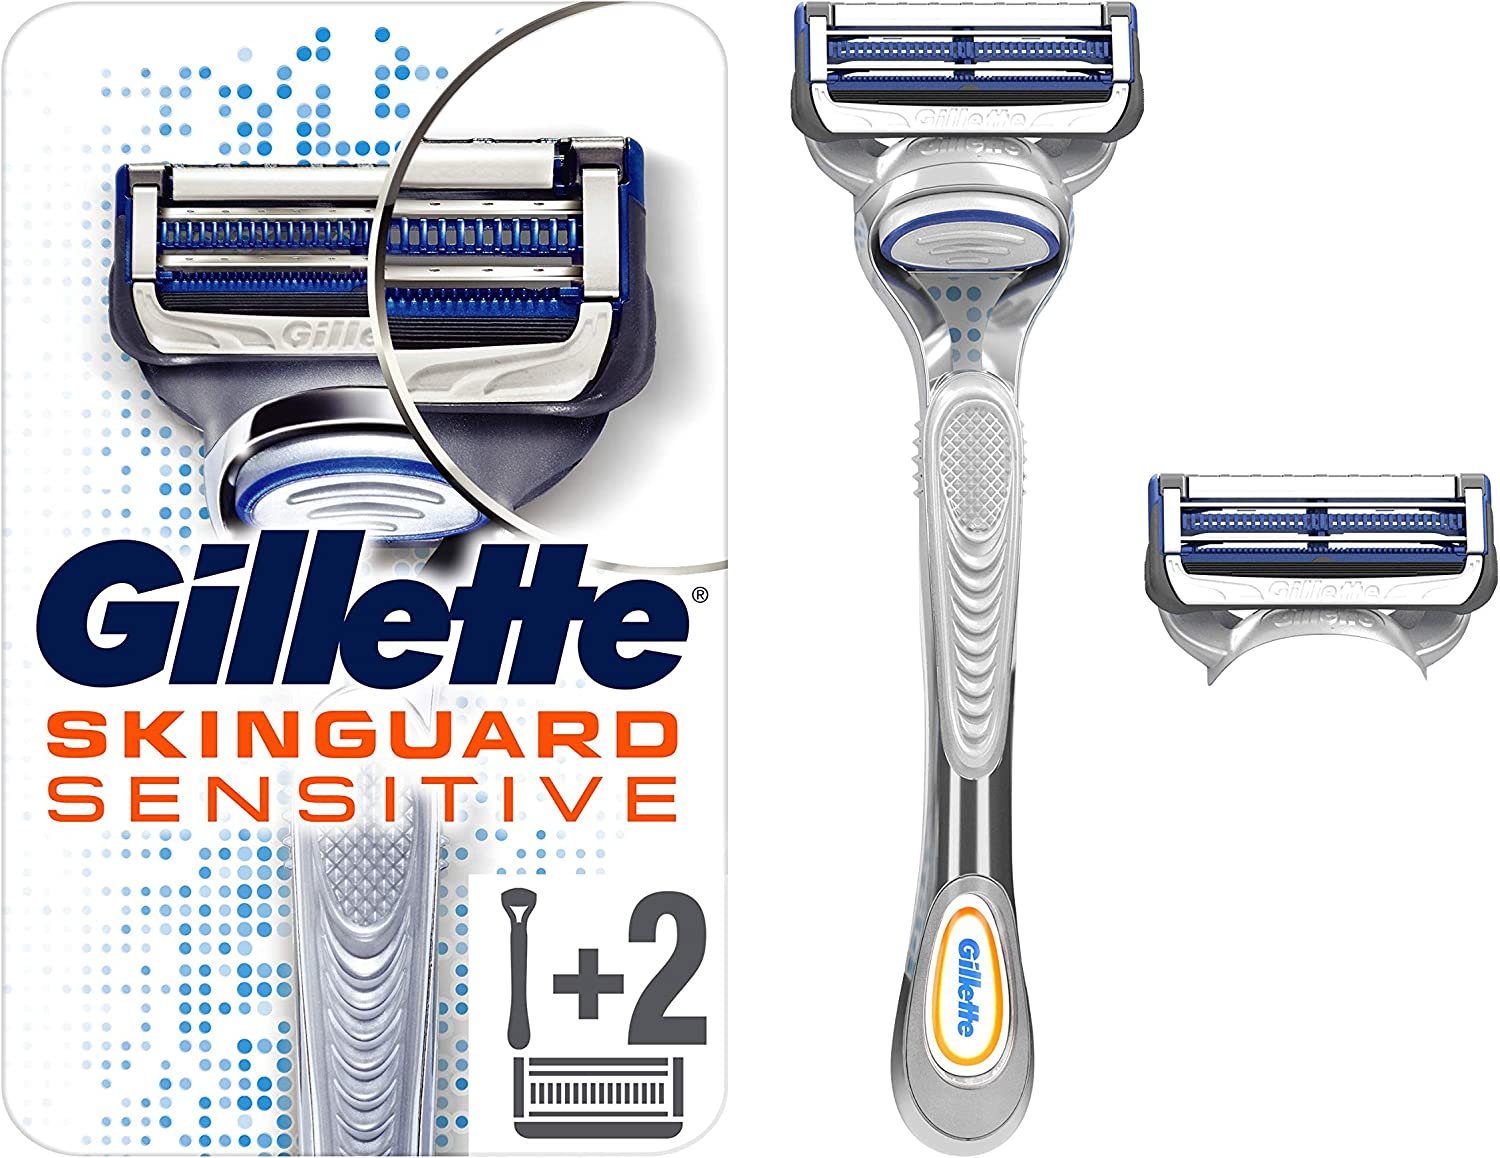 Gilette Skinguard Sensitive Razor For Men 80 g: Amazon.es: Salud y ...